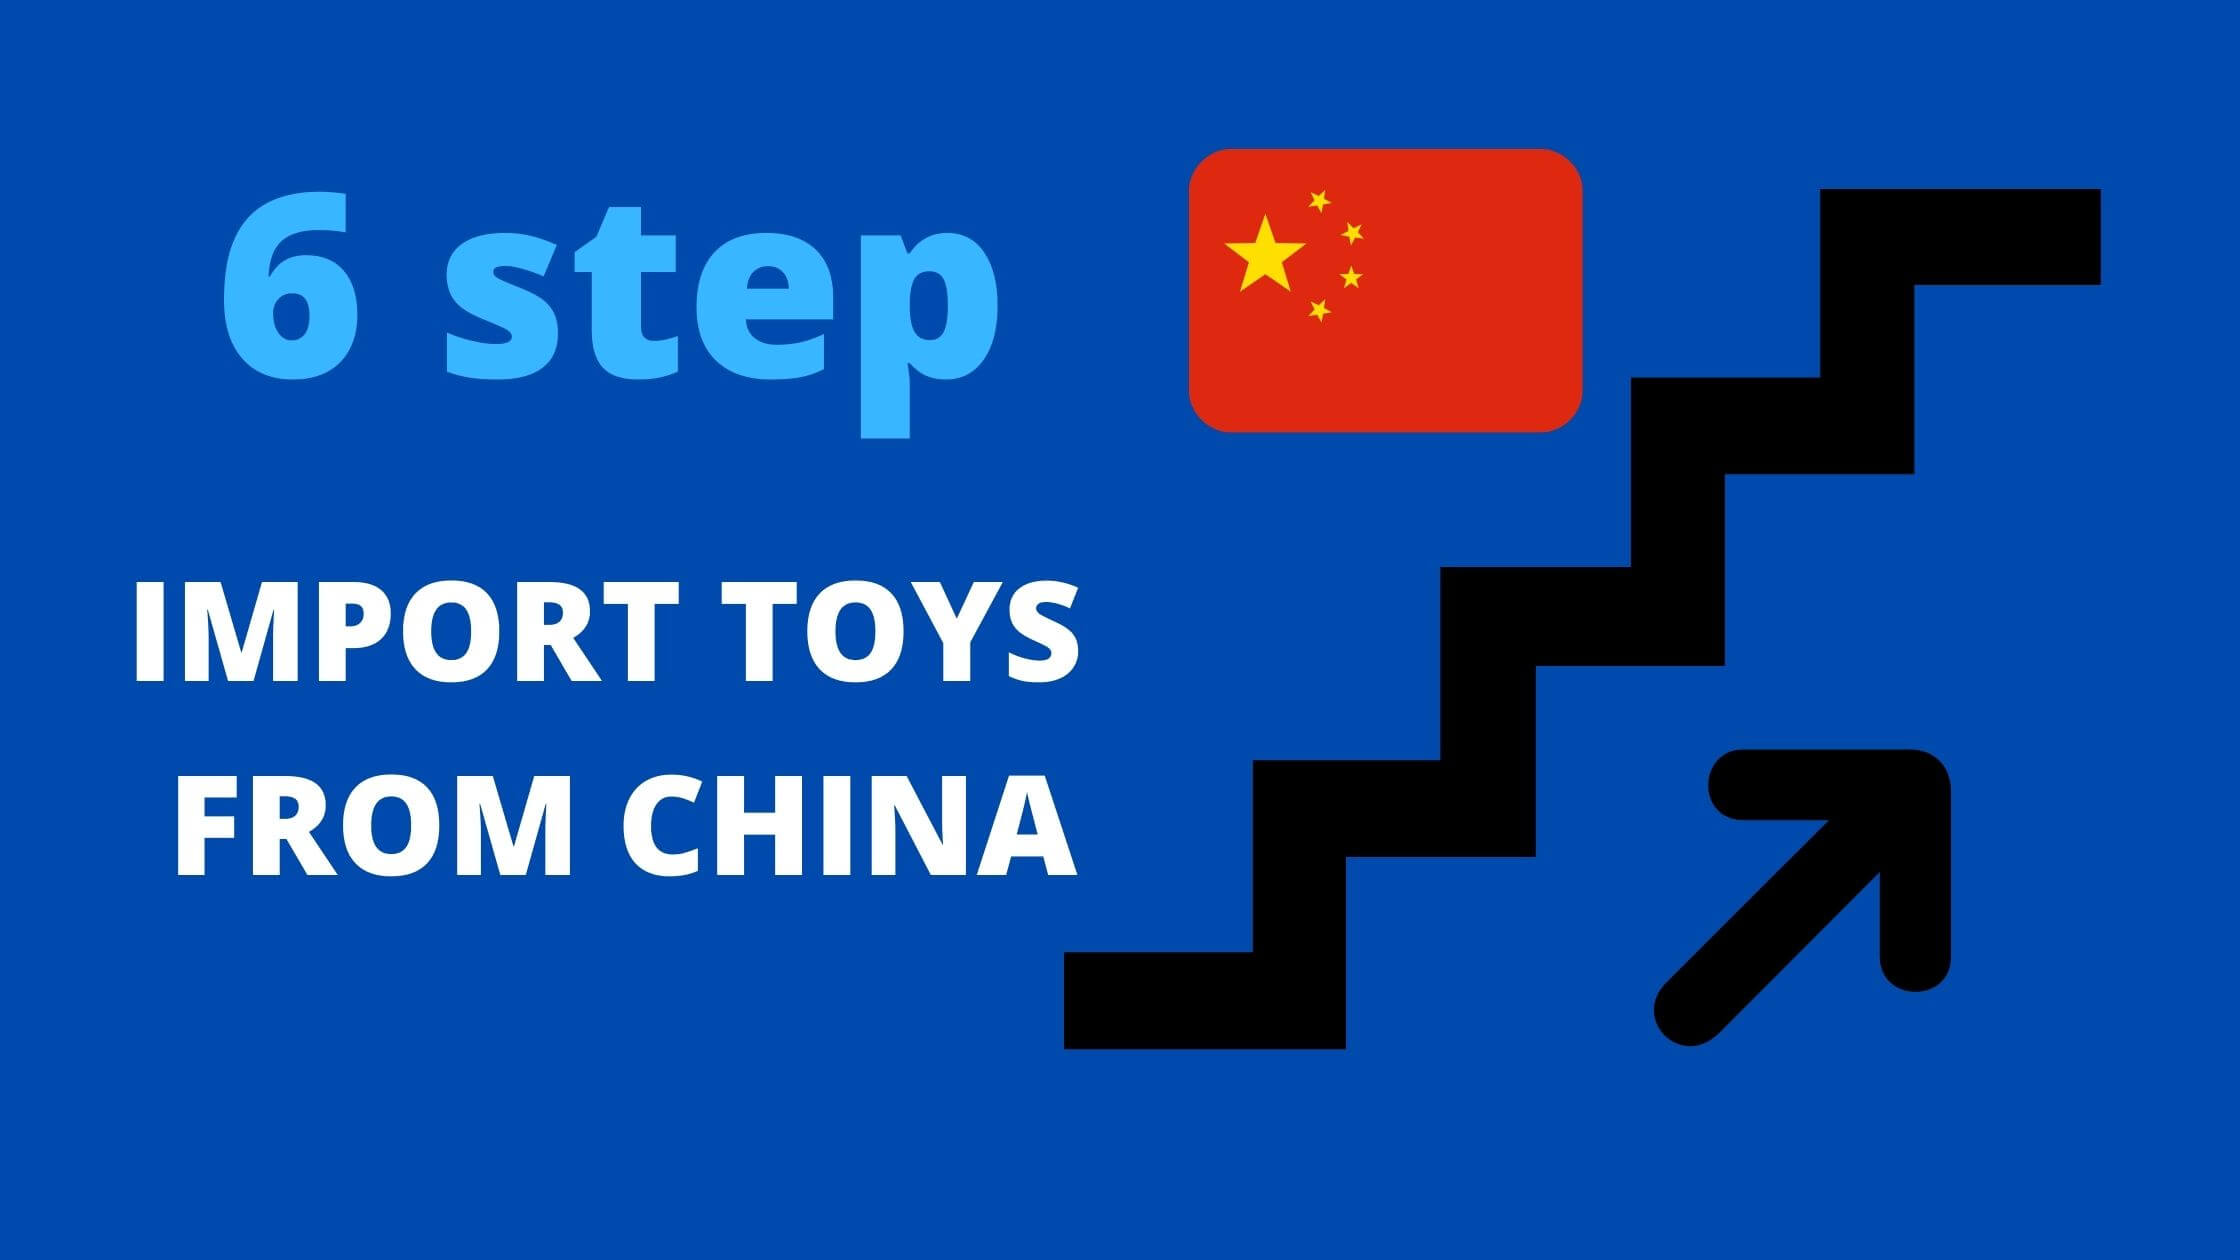 6 step TO IMPORT FROM CHINA